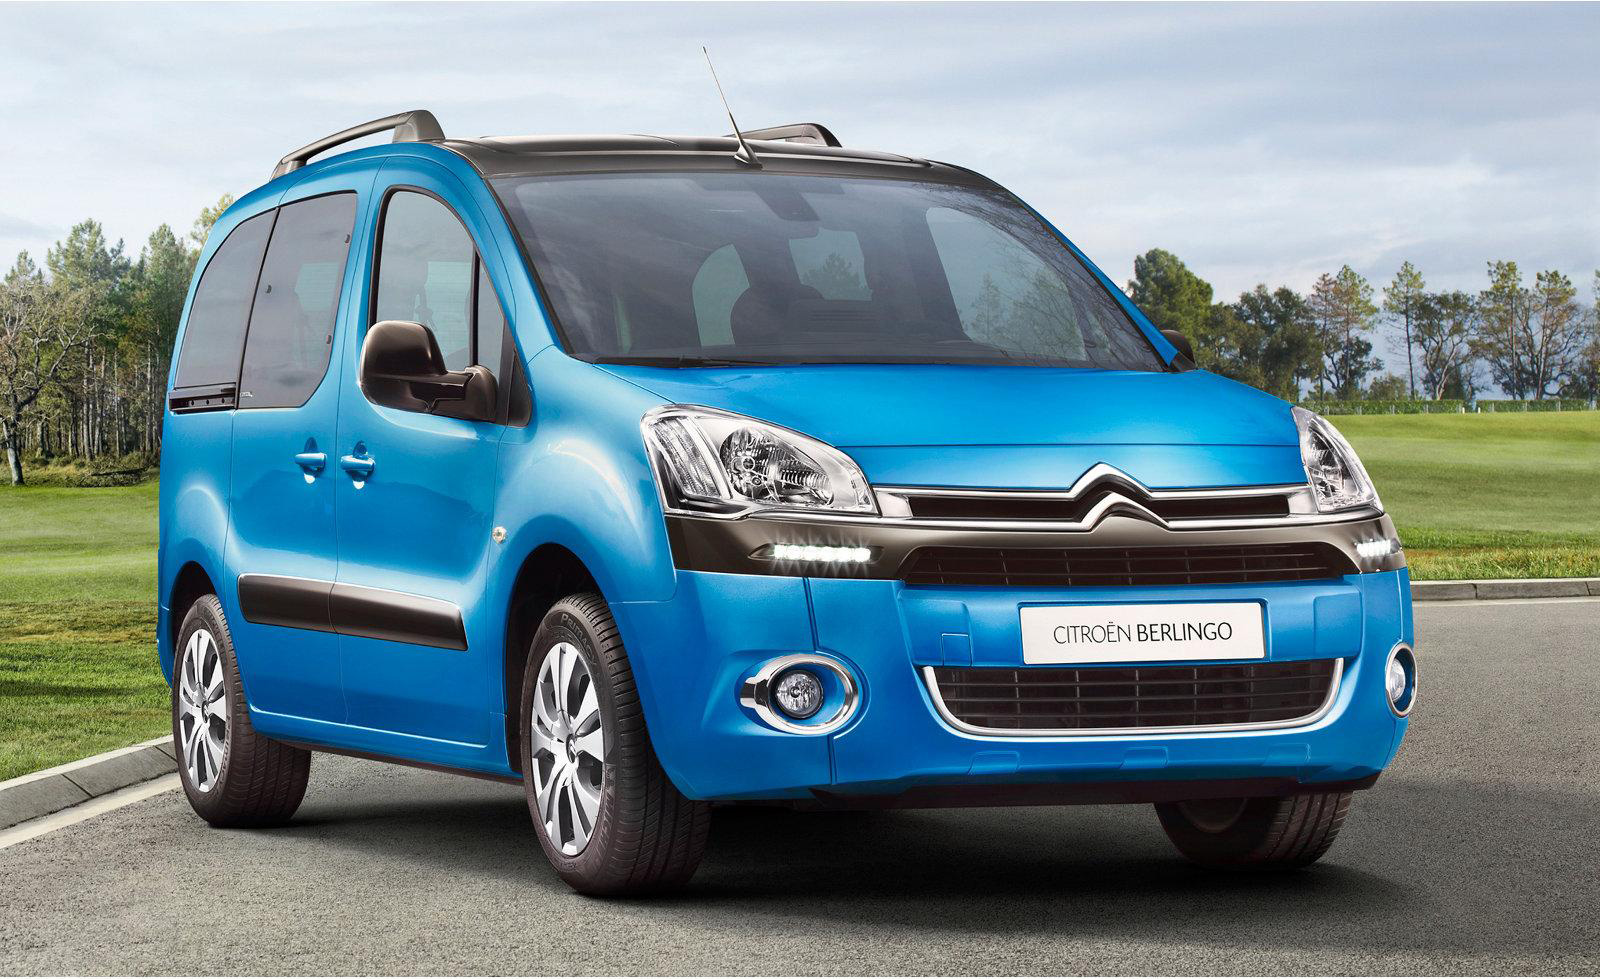 2012 Citroen Berlingo #14